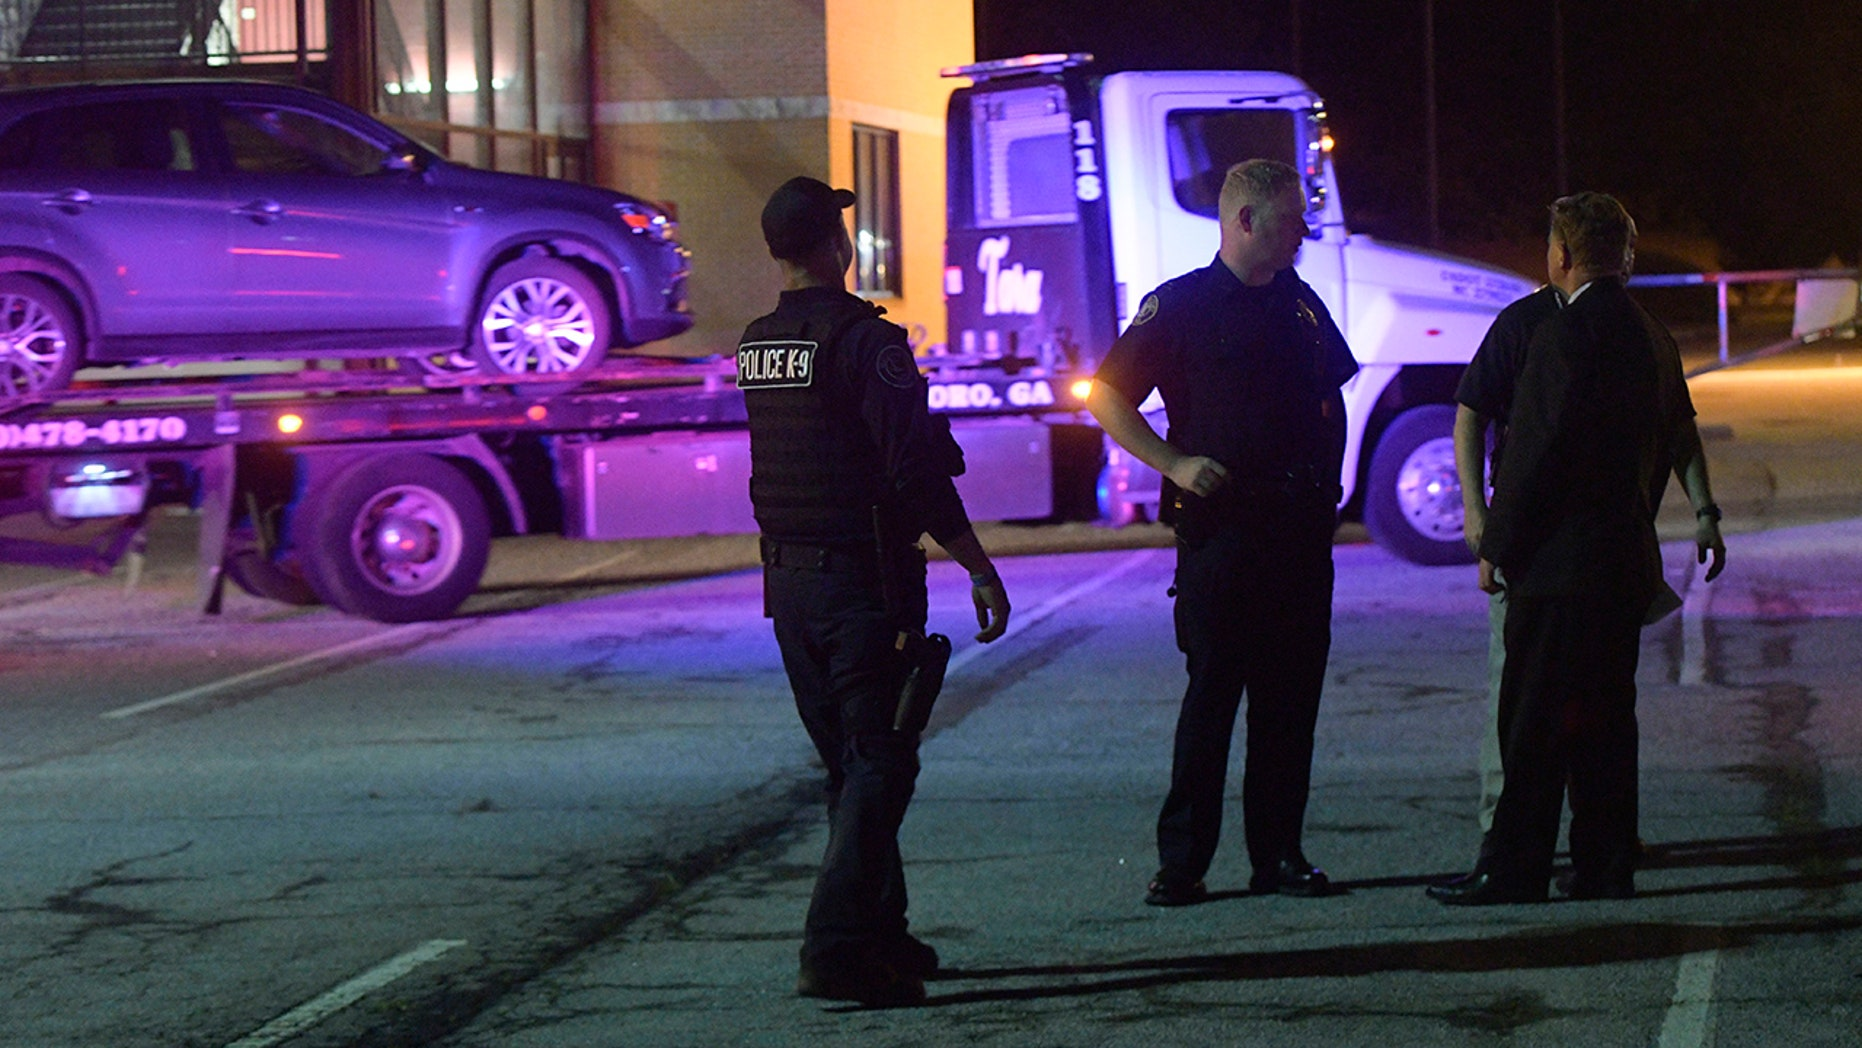 Law enforcement officers talk as a car is towed away in the Mt. Zion High School parking lot as part of an investigation into a shooting Friday, May 18, 2018, in Jonesboro, Ga.